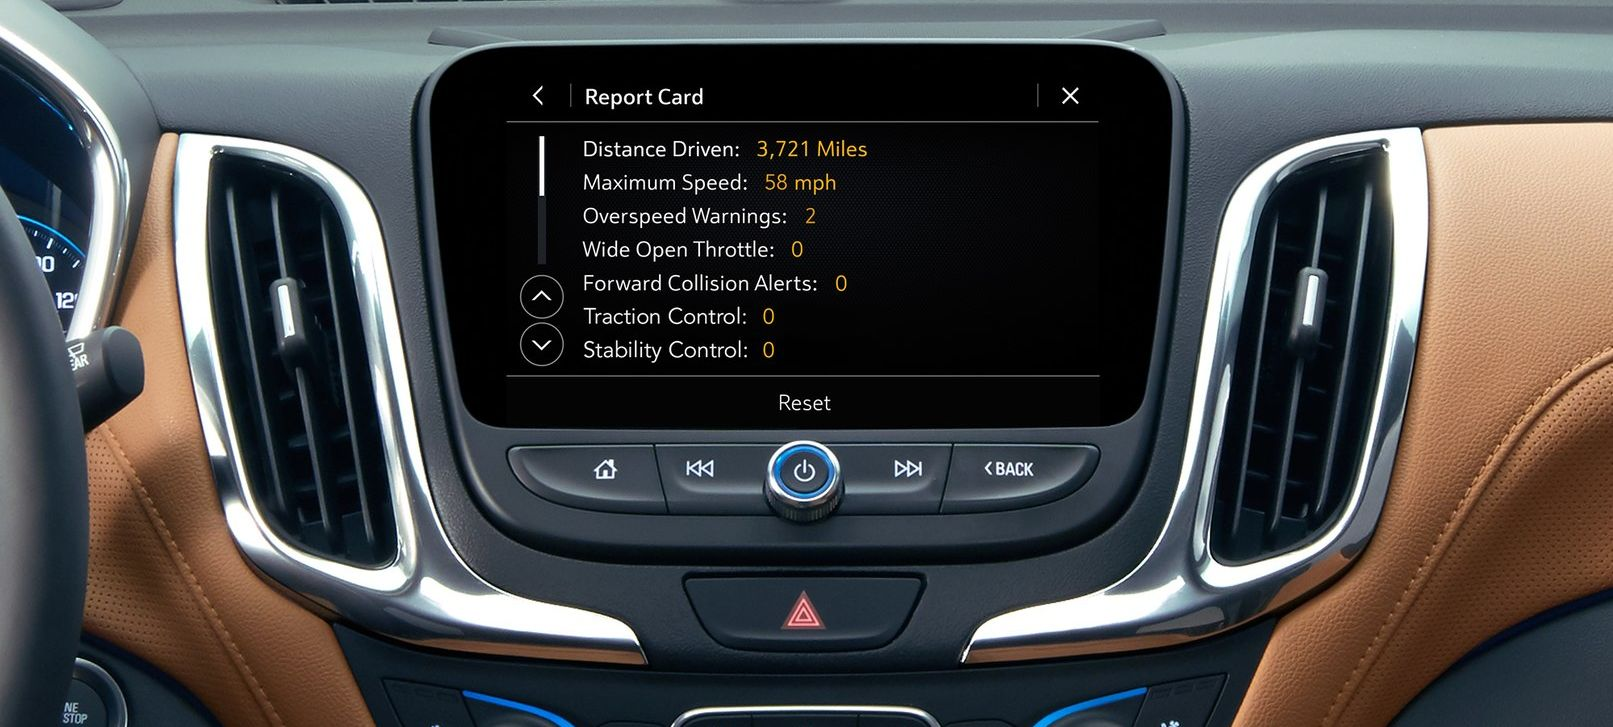 Technology in the Chevrolet Equinox